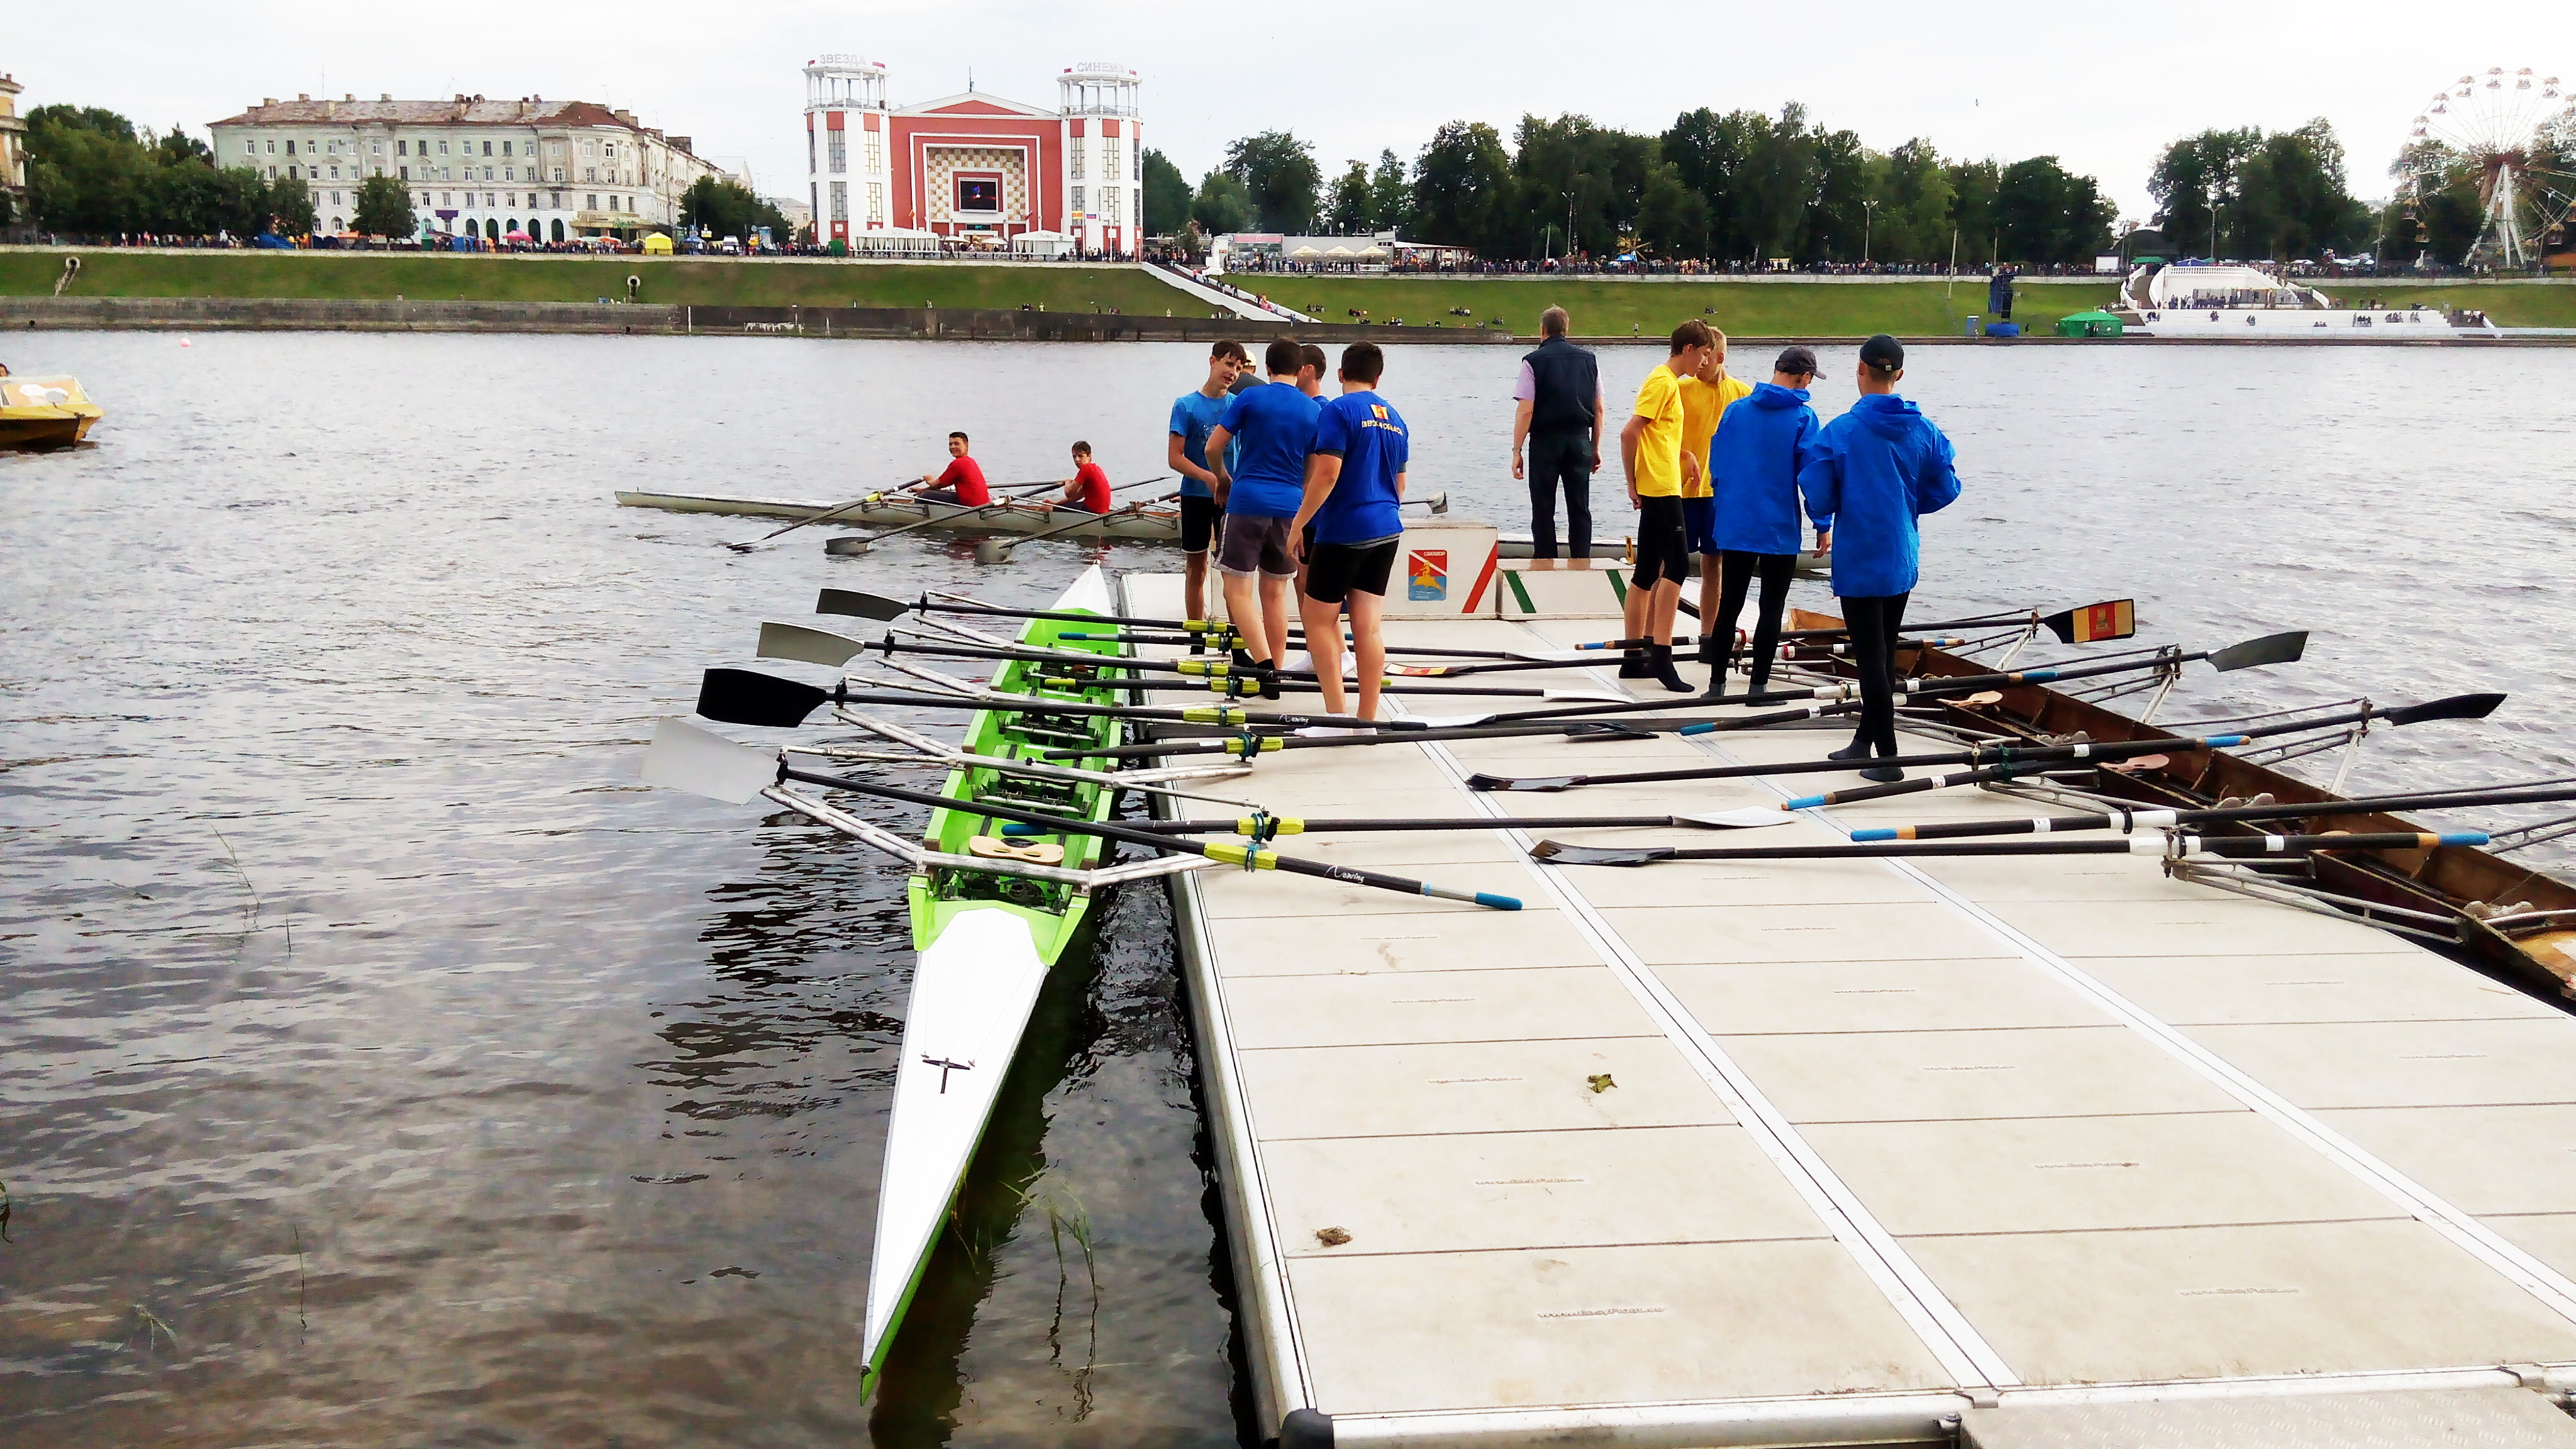 Rowers in tver photo